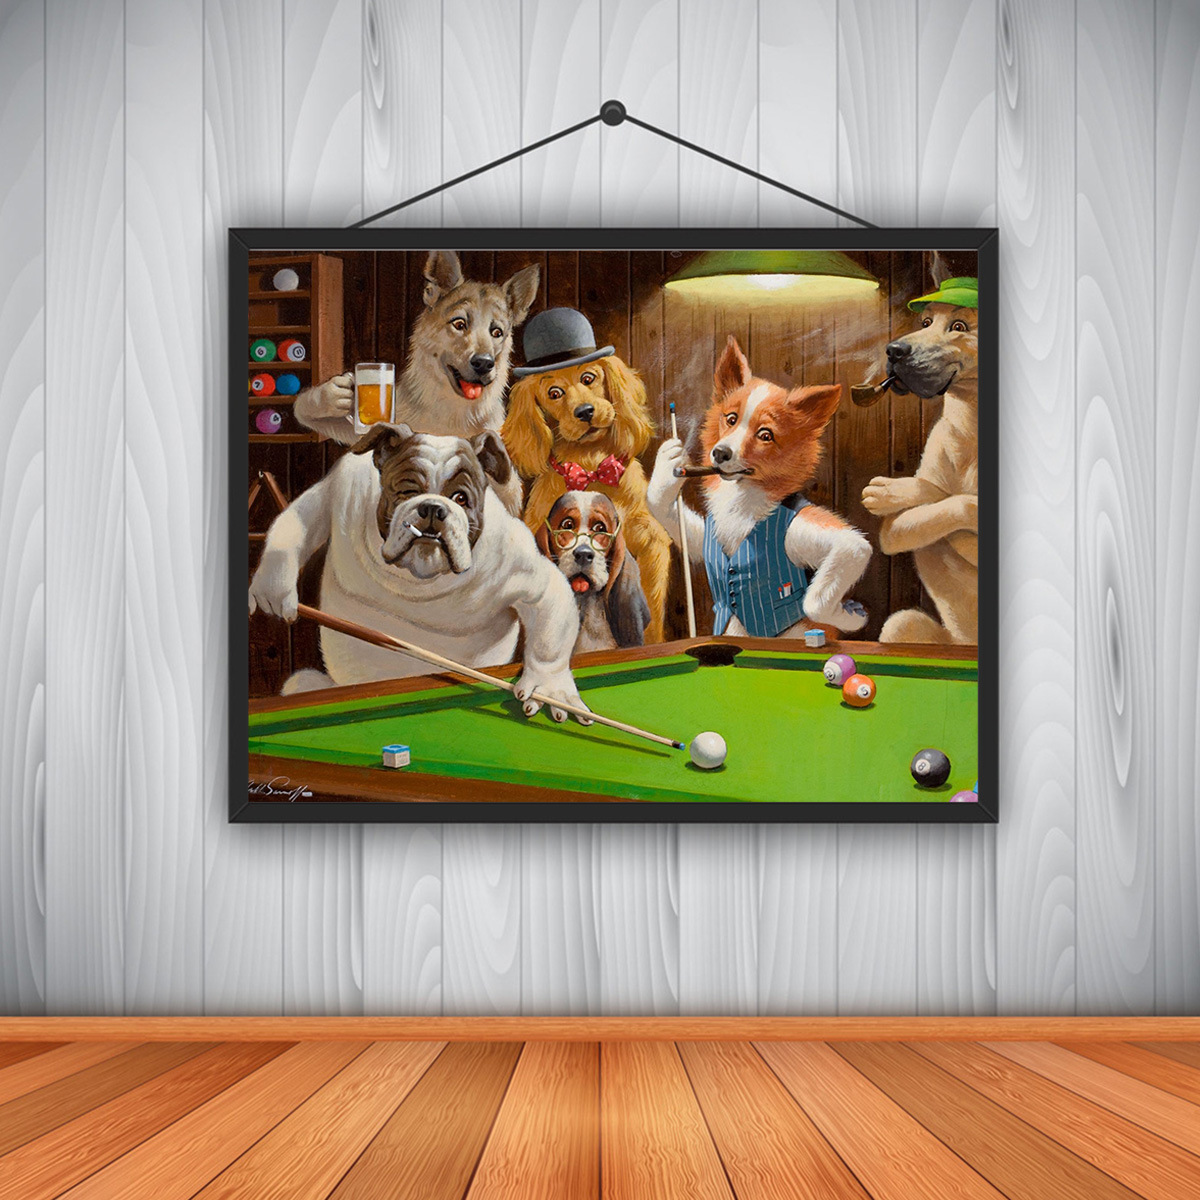 Modern High Definition Canvas Printing Dog Playing Billiards God Snooker Oil Painting Art Home Decoration Poster On Canvas Wall